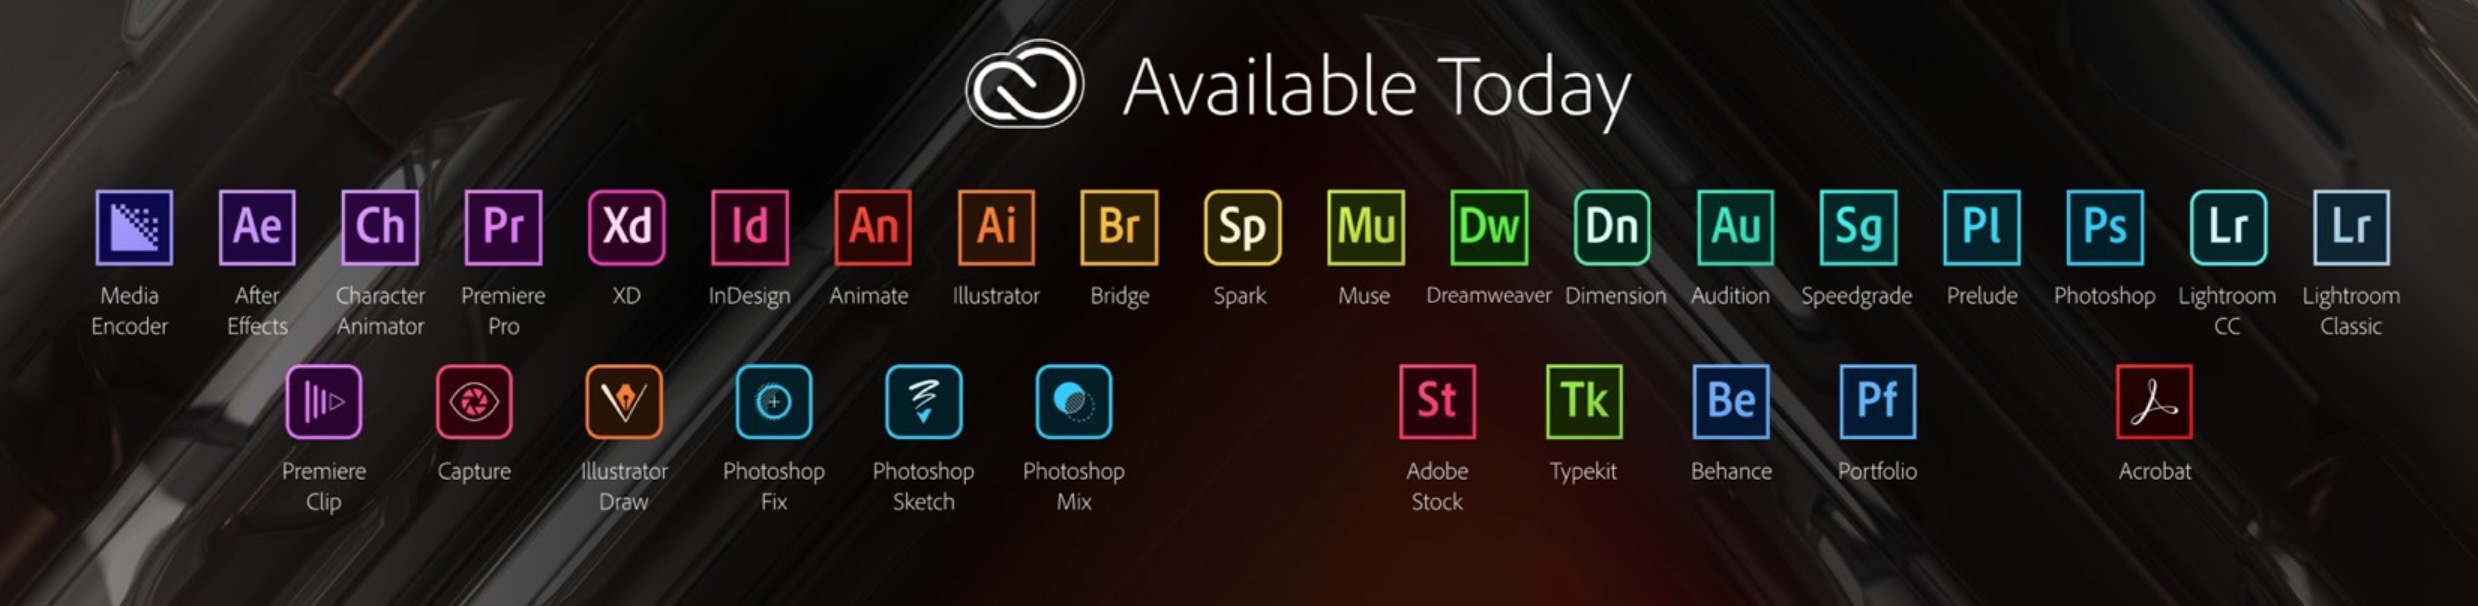 Adobe updates everything at MAX ... including the price for some of us 7